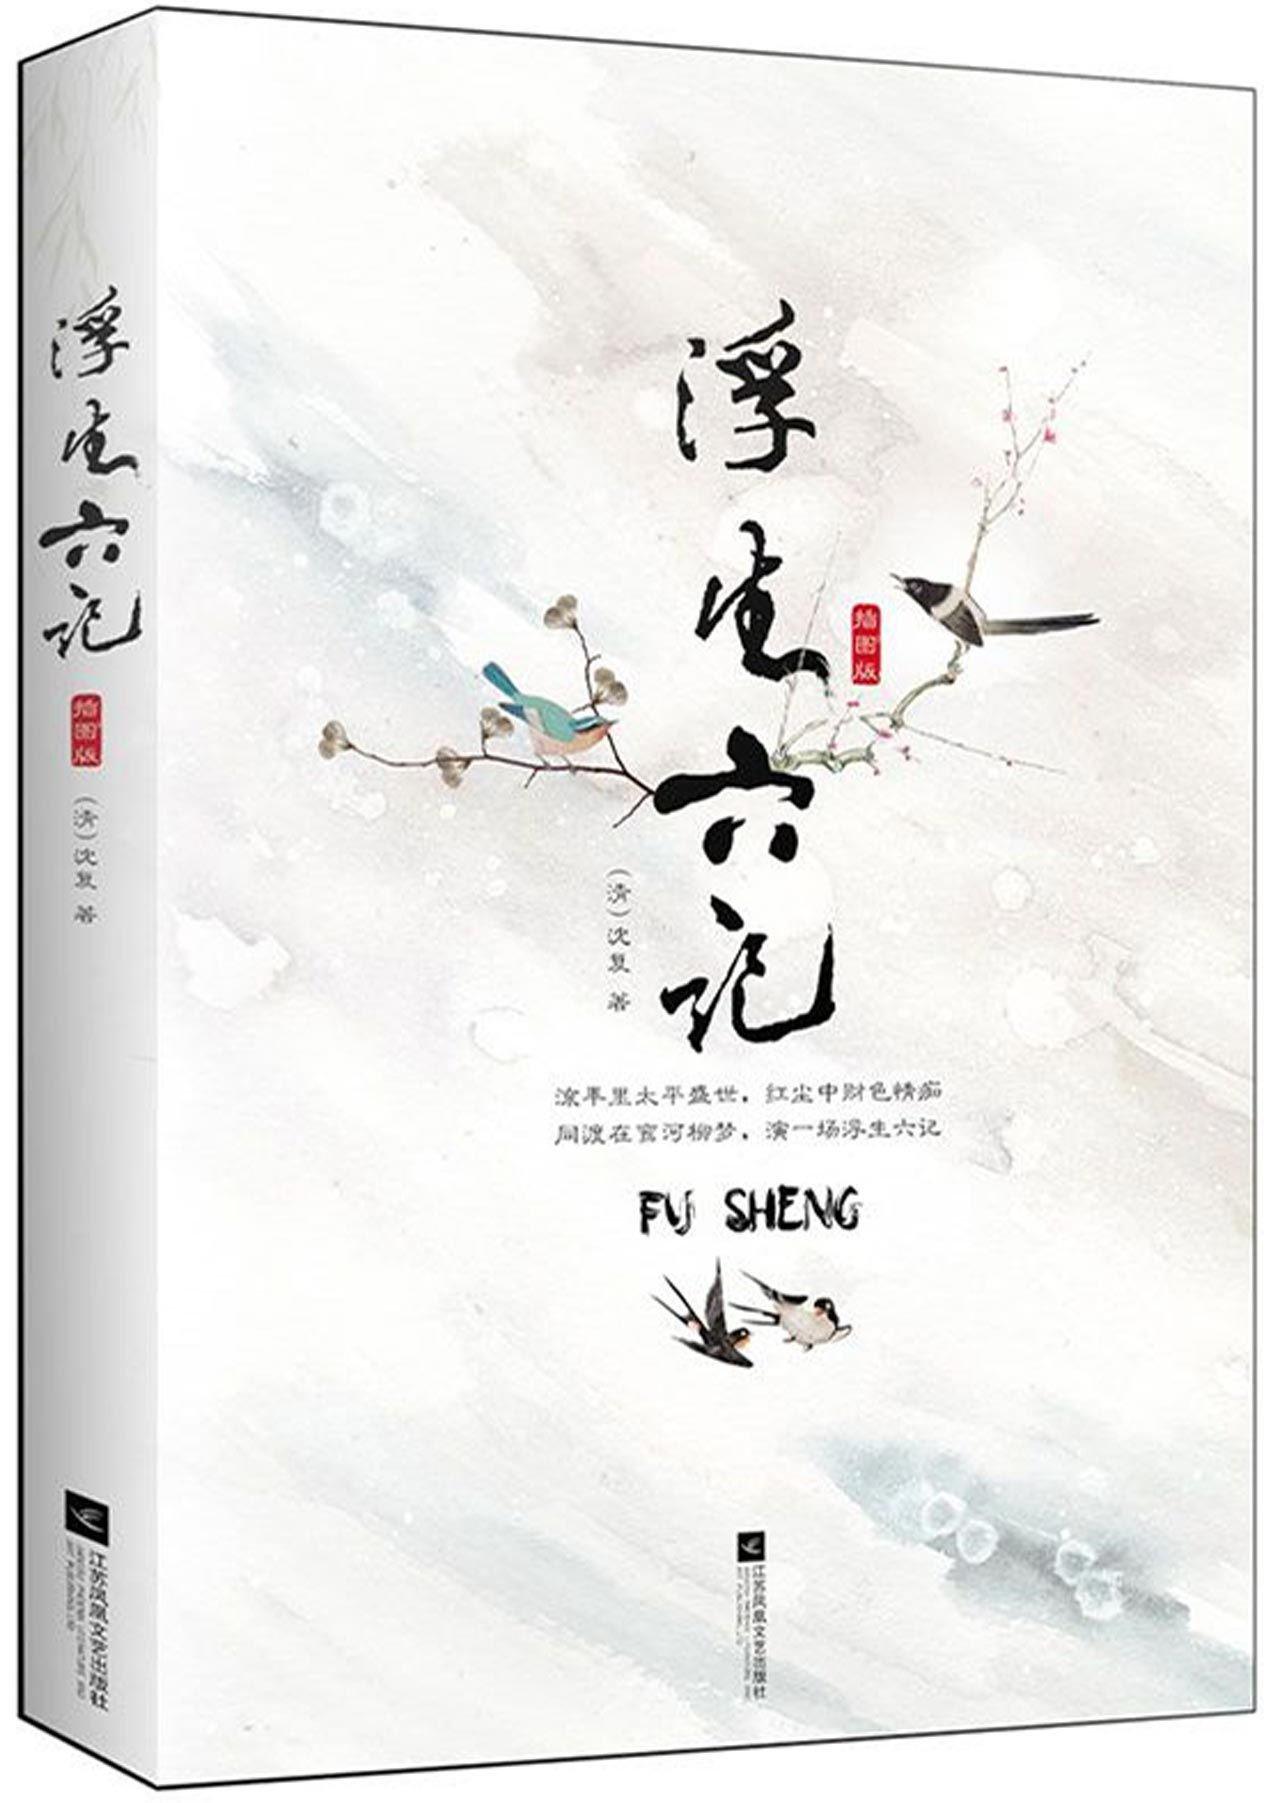 Six Records of a Floating Life (Illustrated Edition) (Chinese Edition)  (Chinese) Hardcover – December 1, 2017